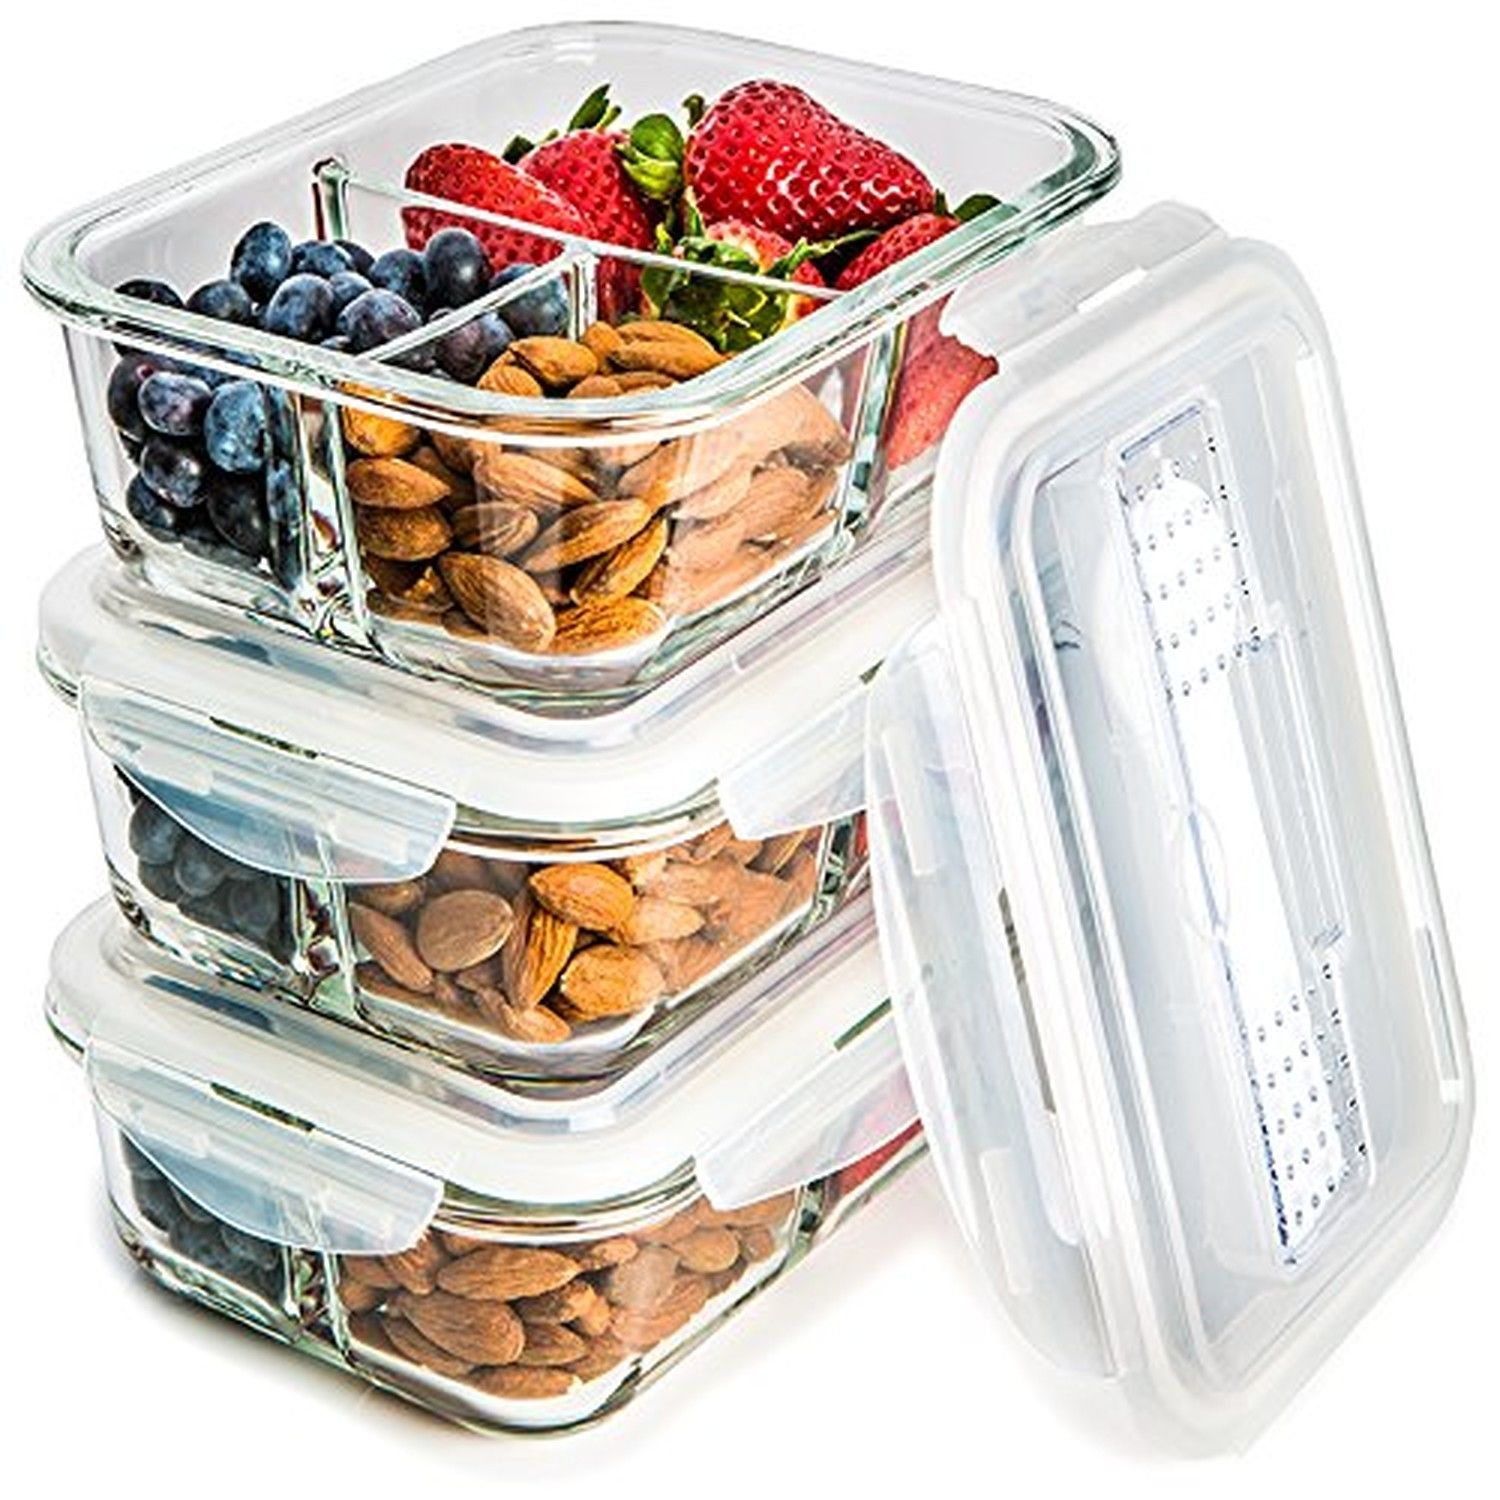 Glass Meal Prep Food Storage Containers  3 Compartment Container Set with Sma... 1